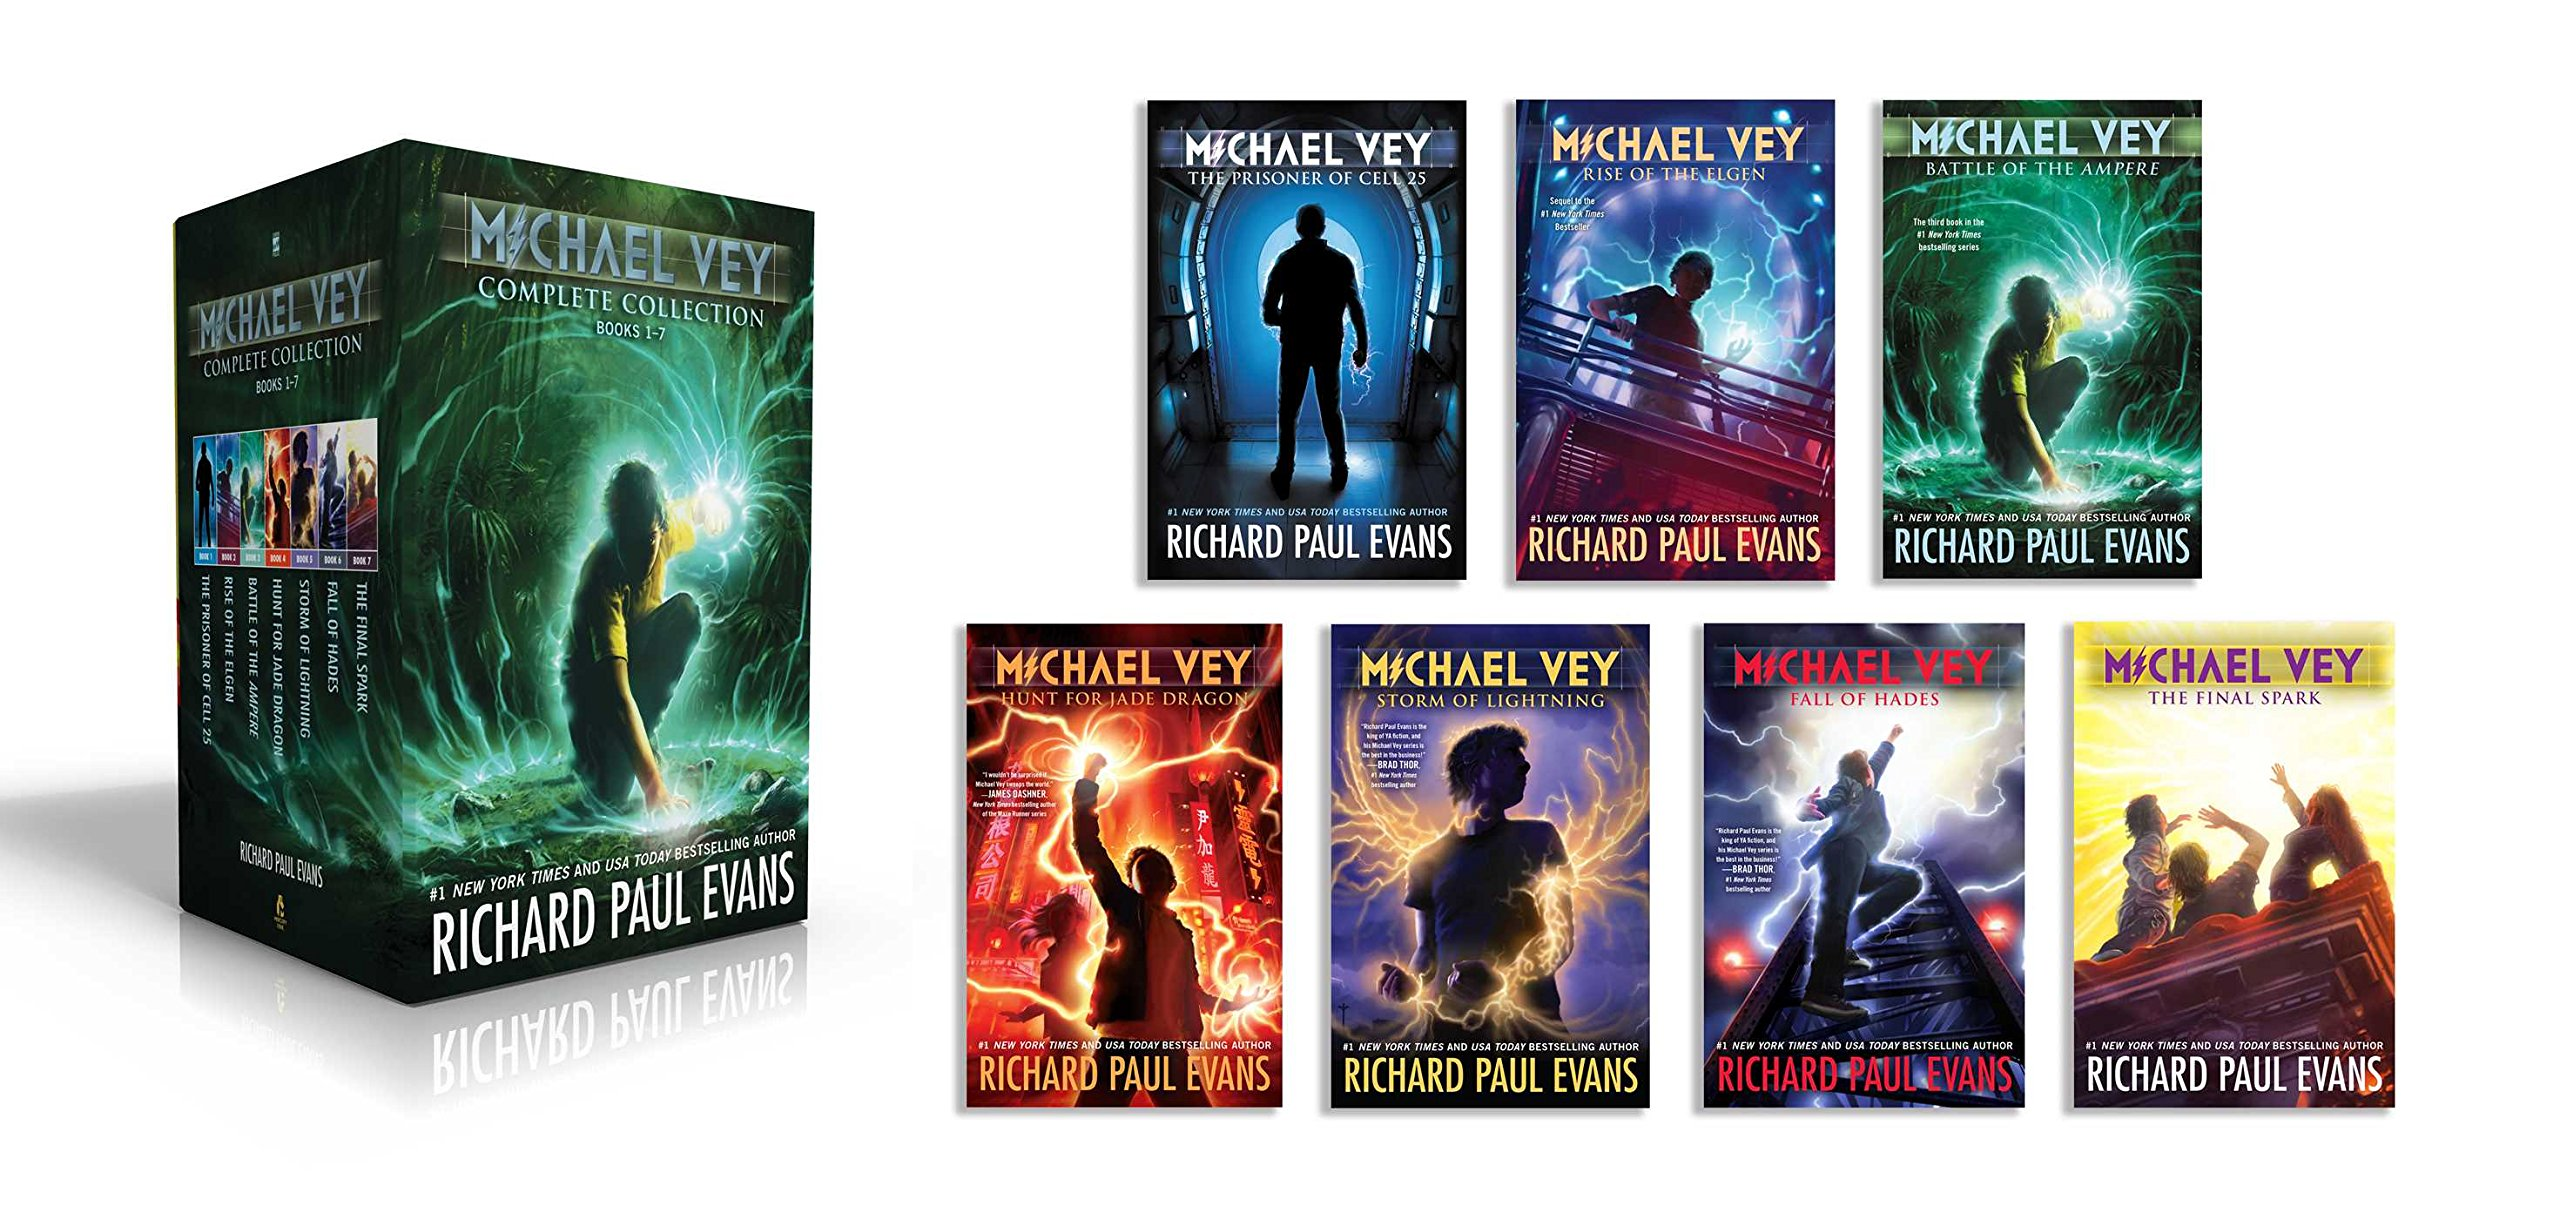 Michael Vey Complete Collection Books 1-7: Michael Vey; Michael Vey 2; Michael Vey 3; Michael Vey 4; Michael Vey 5; Michael Vey 6; Michael Vey 7 by Simon Pulse/Mercury Ink